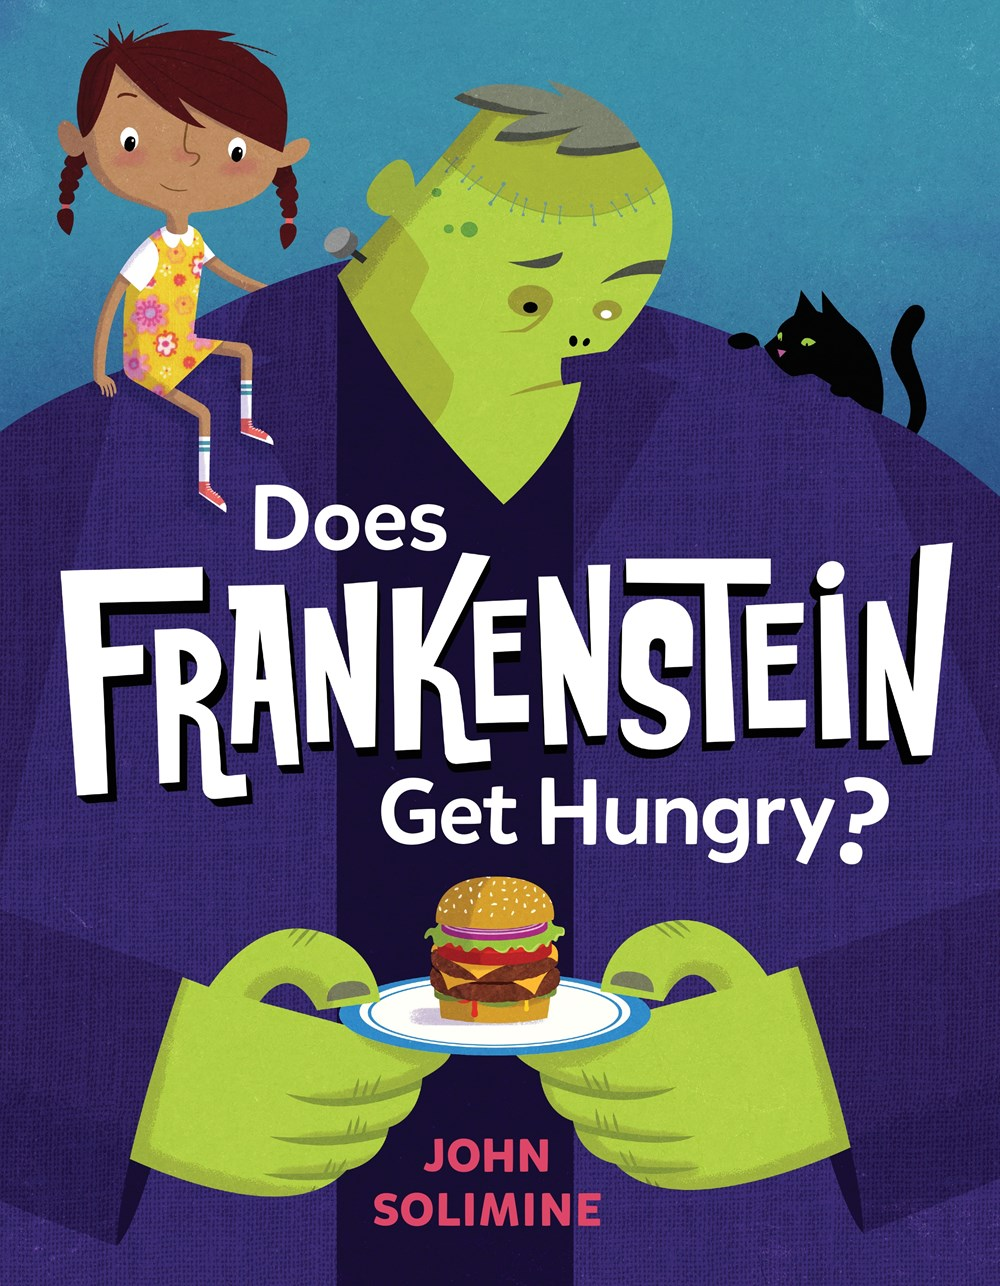 Sunday Story Time with John Solimine (Author & Illustrator of Does Frankenstein Get Hungry?)